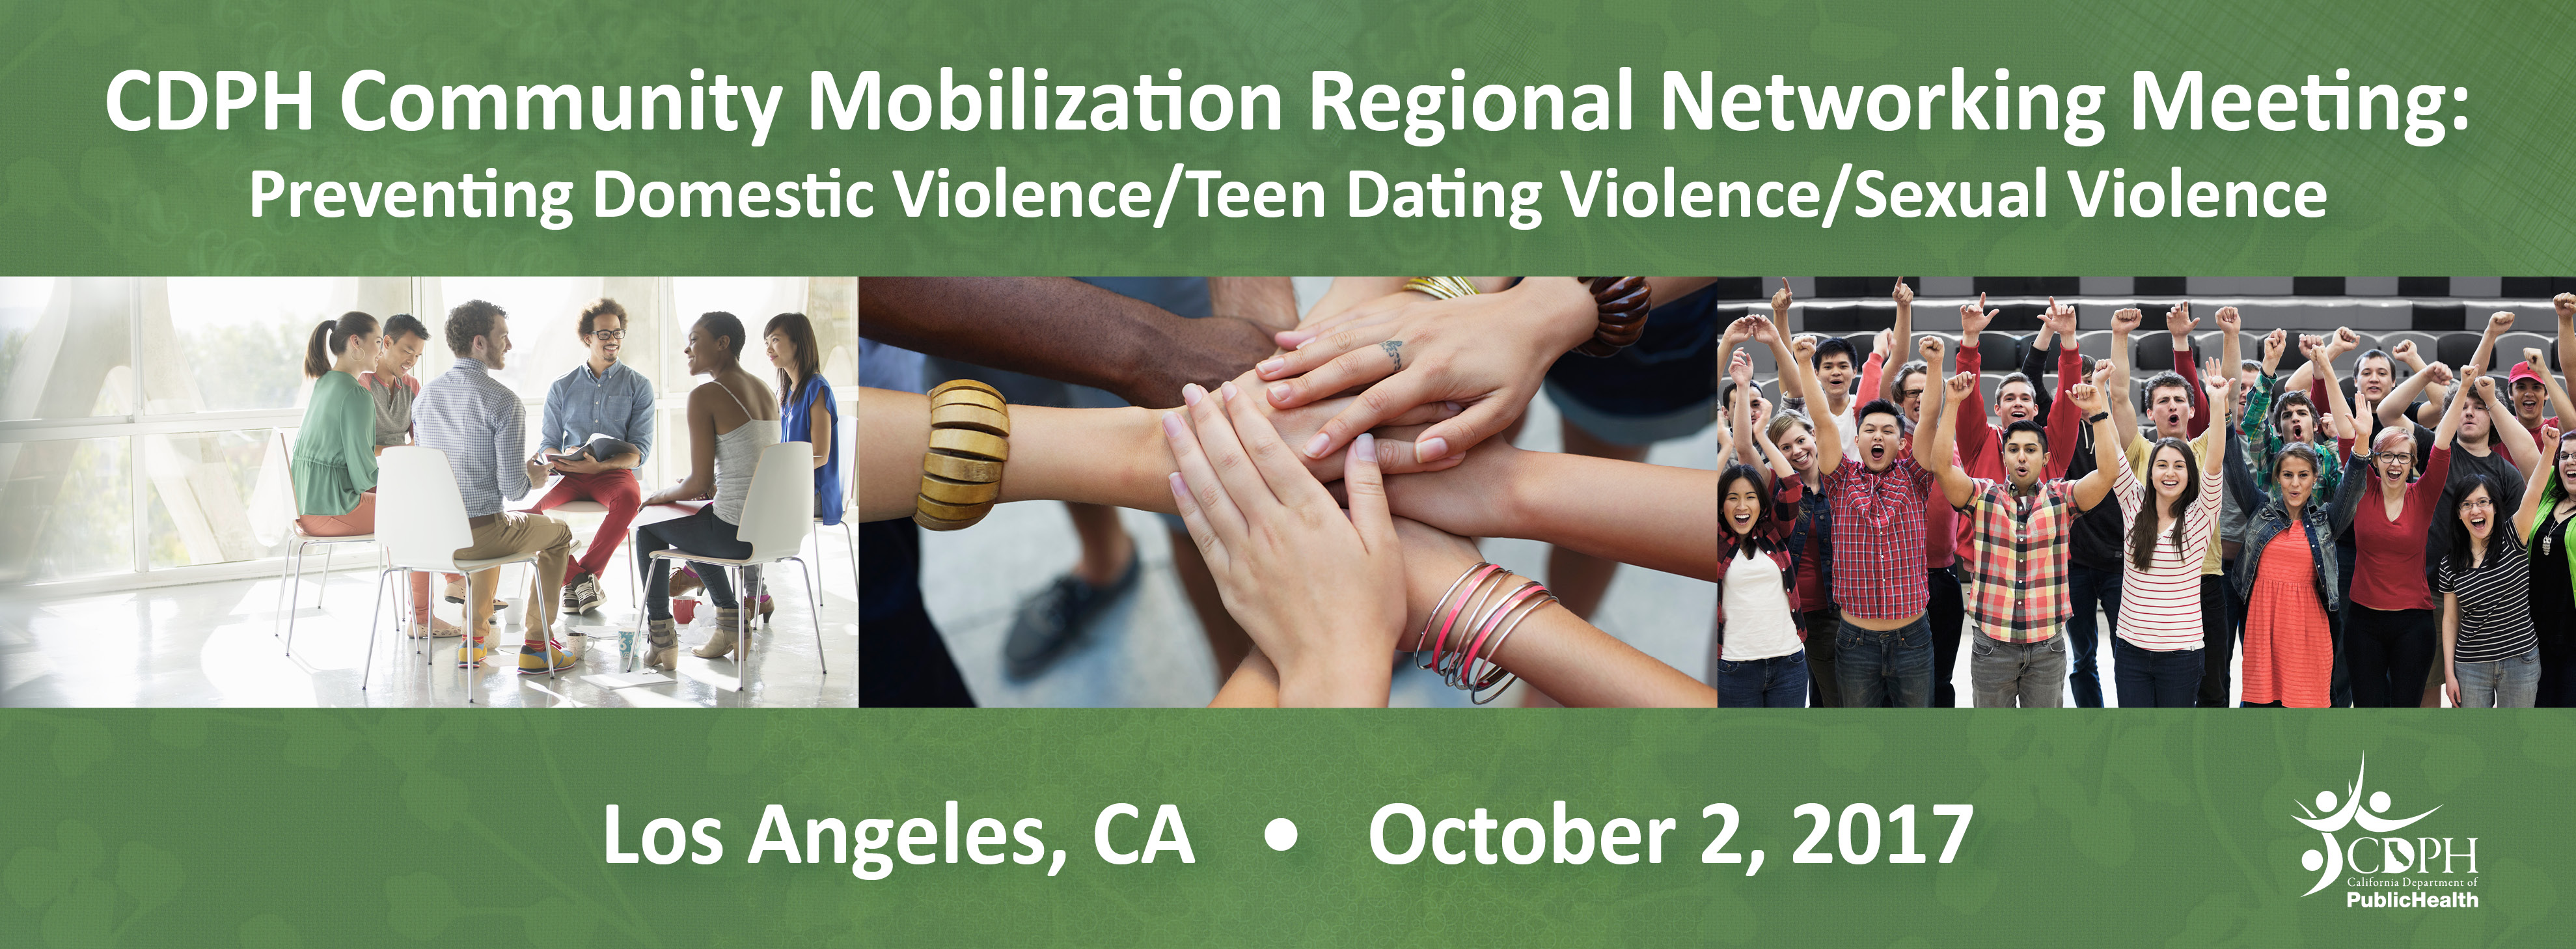 CDPH Community Mobilization Regional Networking Meeting: Preventing Domestic Violence/Teen Dating Violence/Sexual Violence